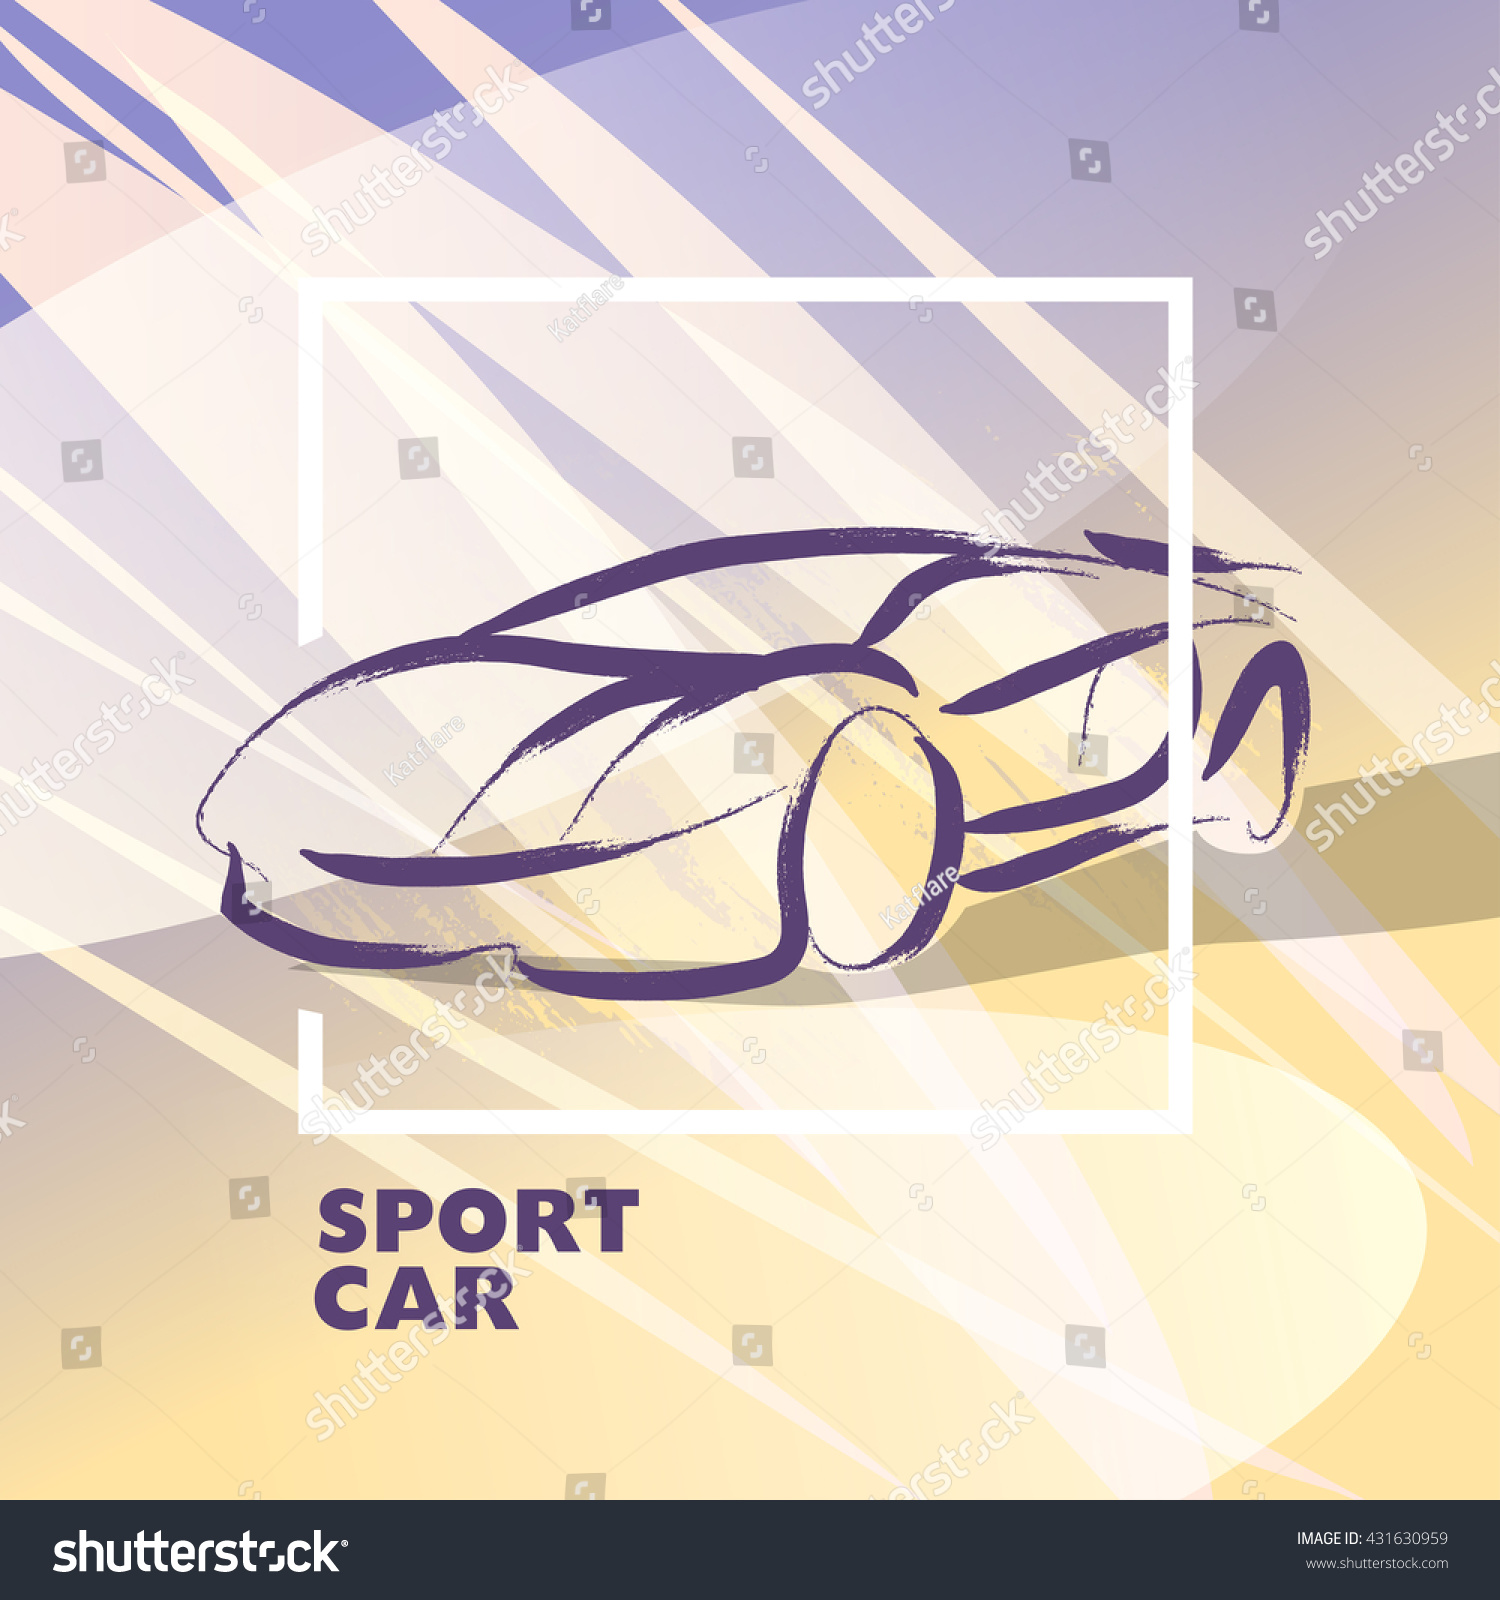 vector car sketch isolated hand drawn stock vector